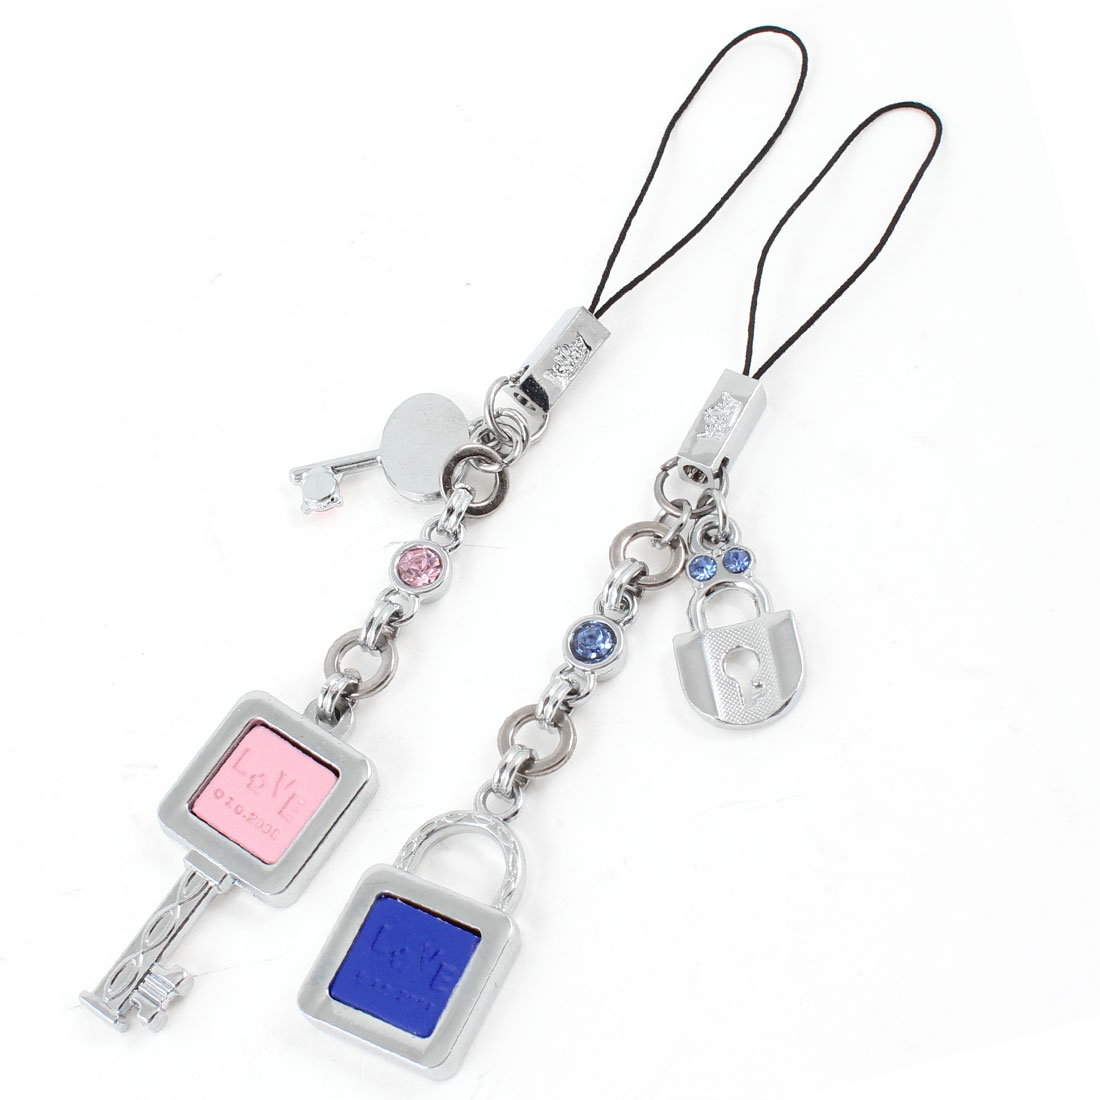 2pcs Lover Pink Blue Lock Key Design Metal Cell Phone Pendant Mp3 Strap String